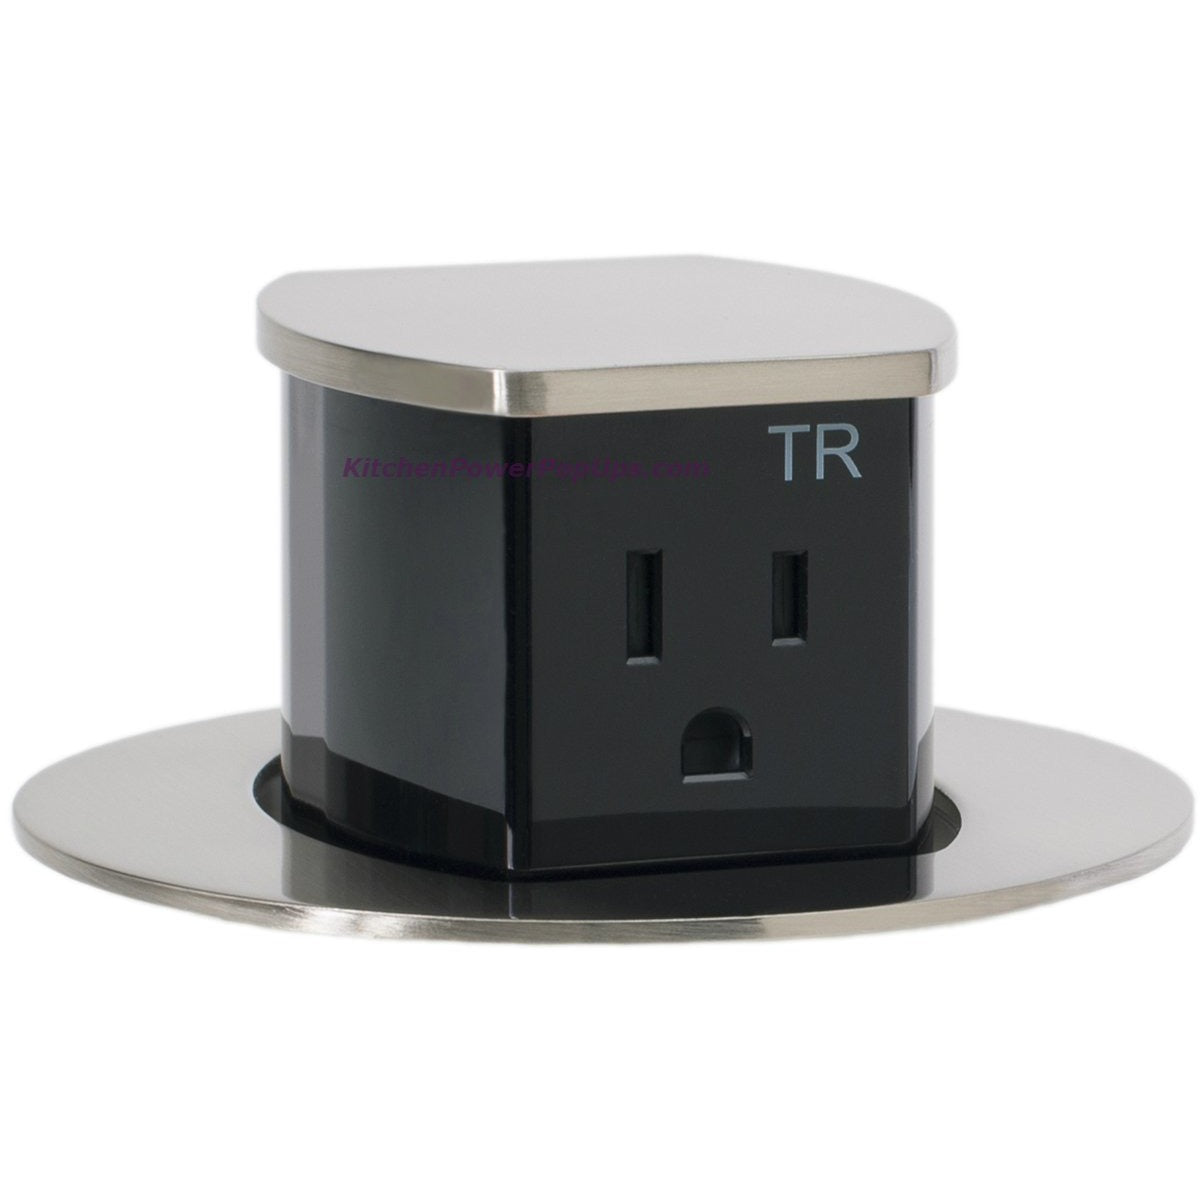 Hubbell Rct201ni Waterproof Pop Up Flush Mount Counter Outlet Wiring Outlets Countertop 2 Sided Spill Proof Nickel